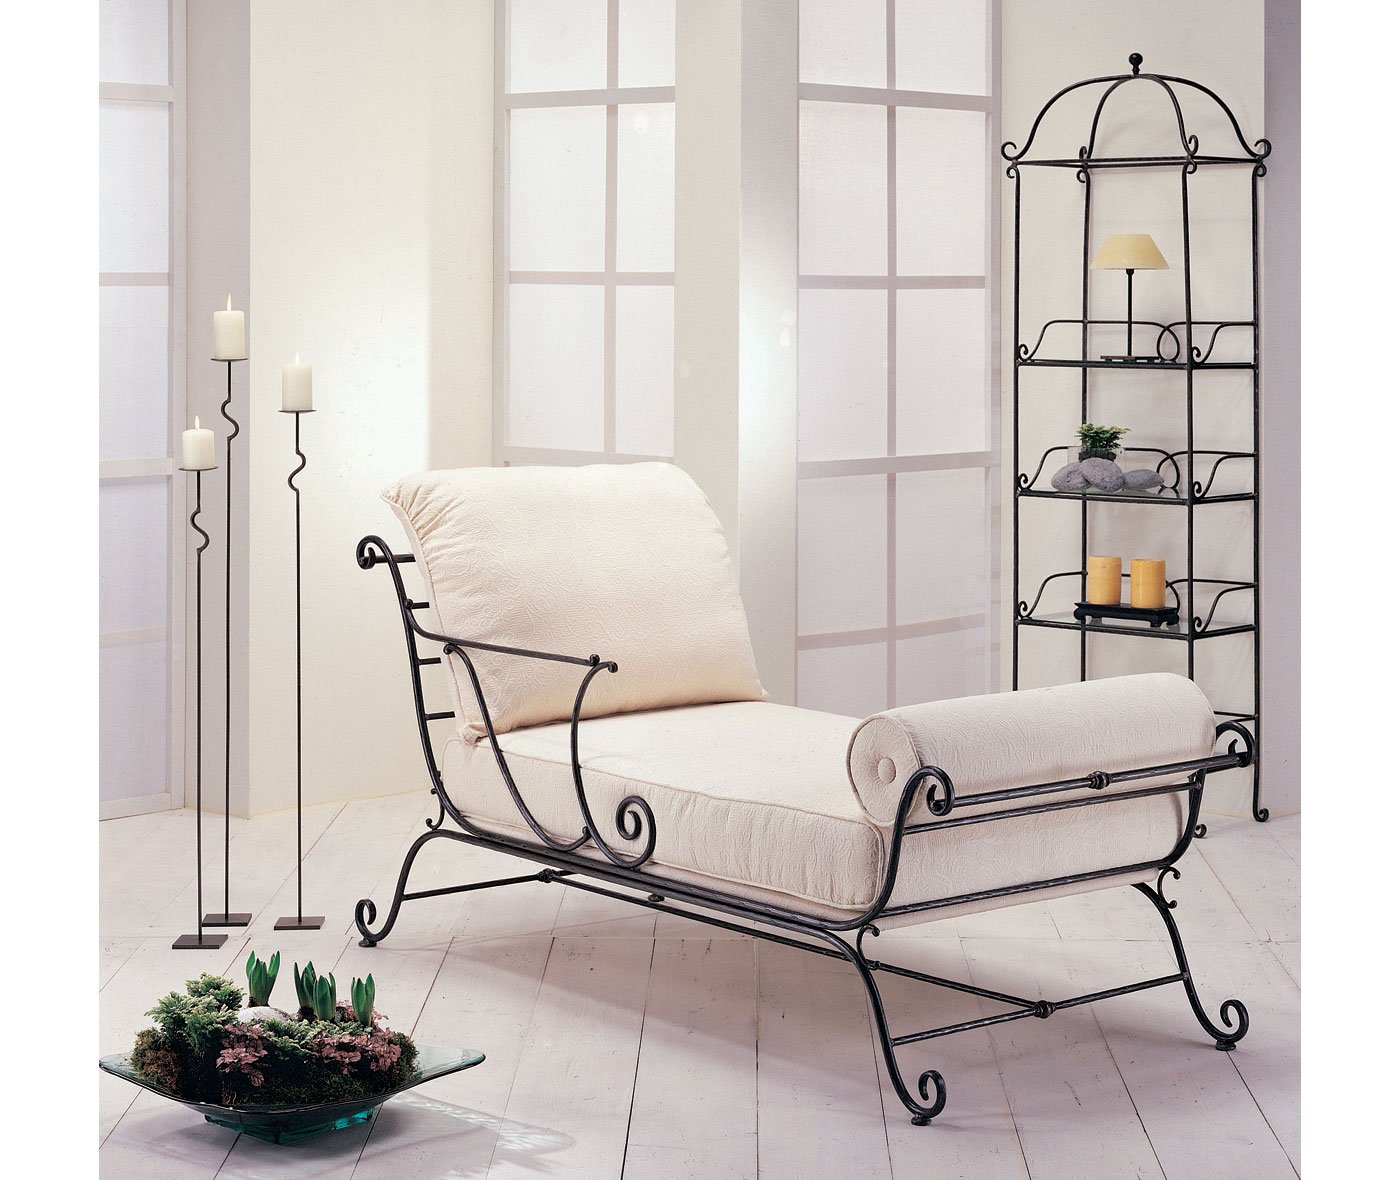 Chaise longue forja Morfeo